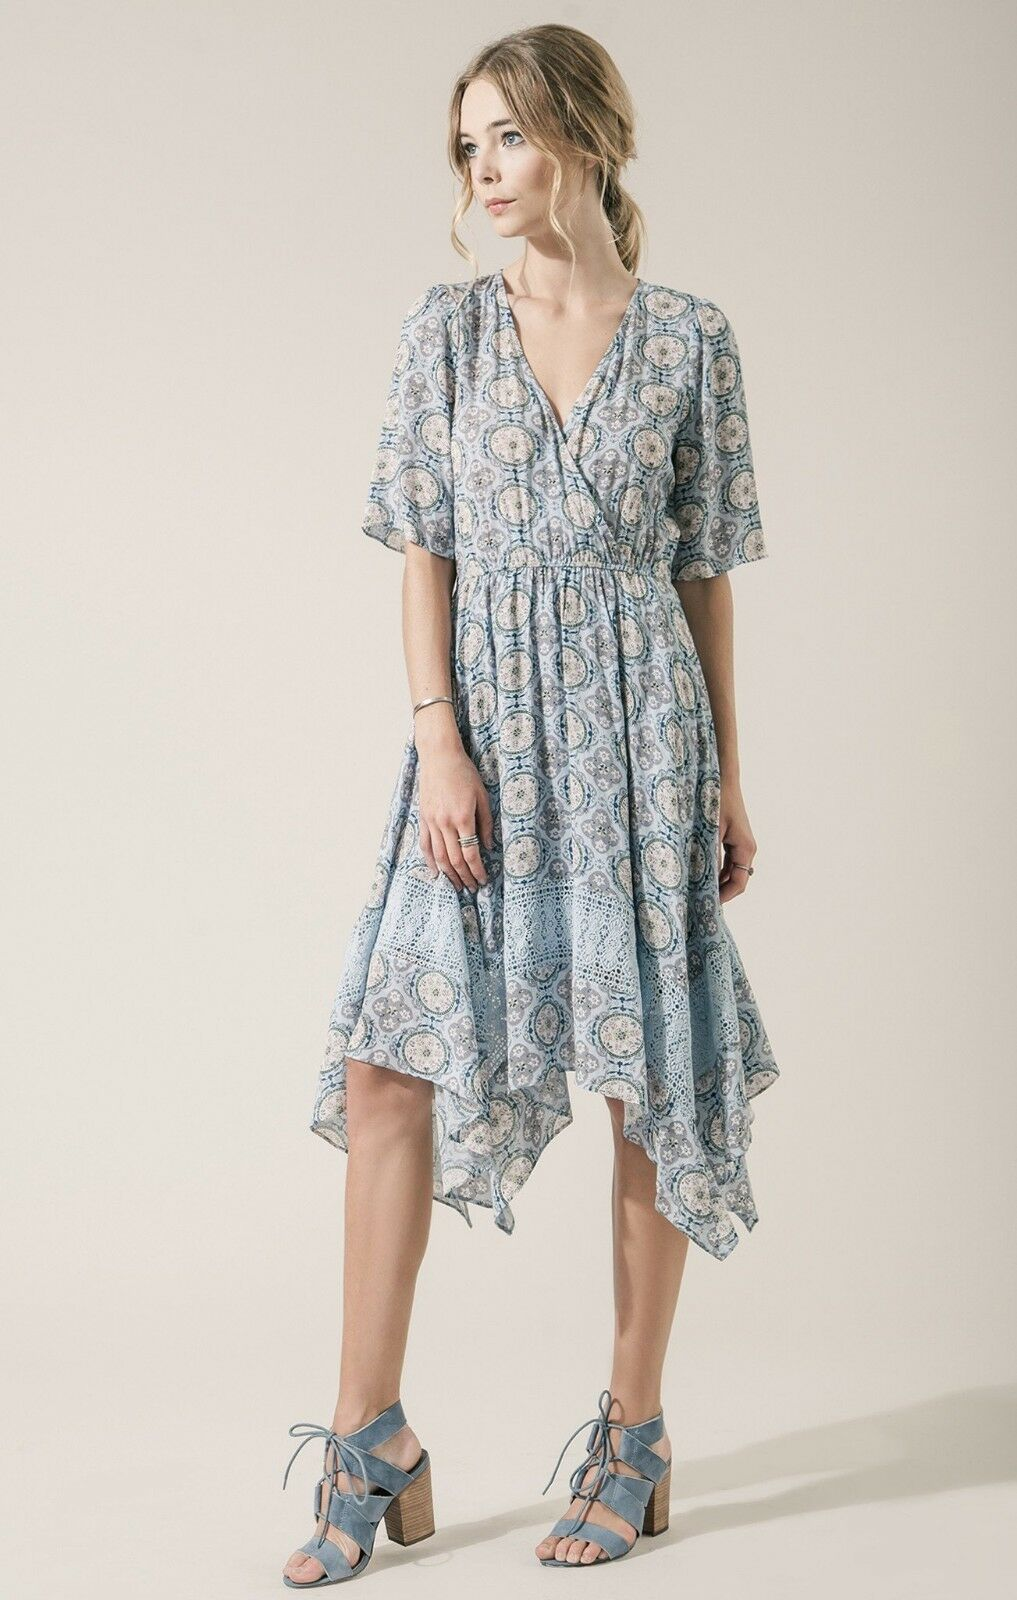 Moon River Women's Paisley Printed Dress with Lace Trim, Light bluee, Small NEW